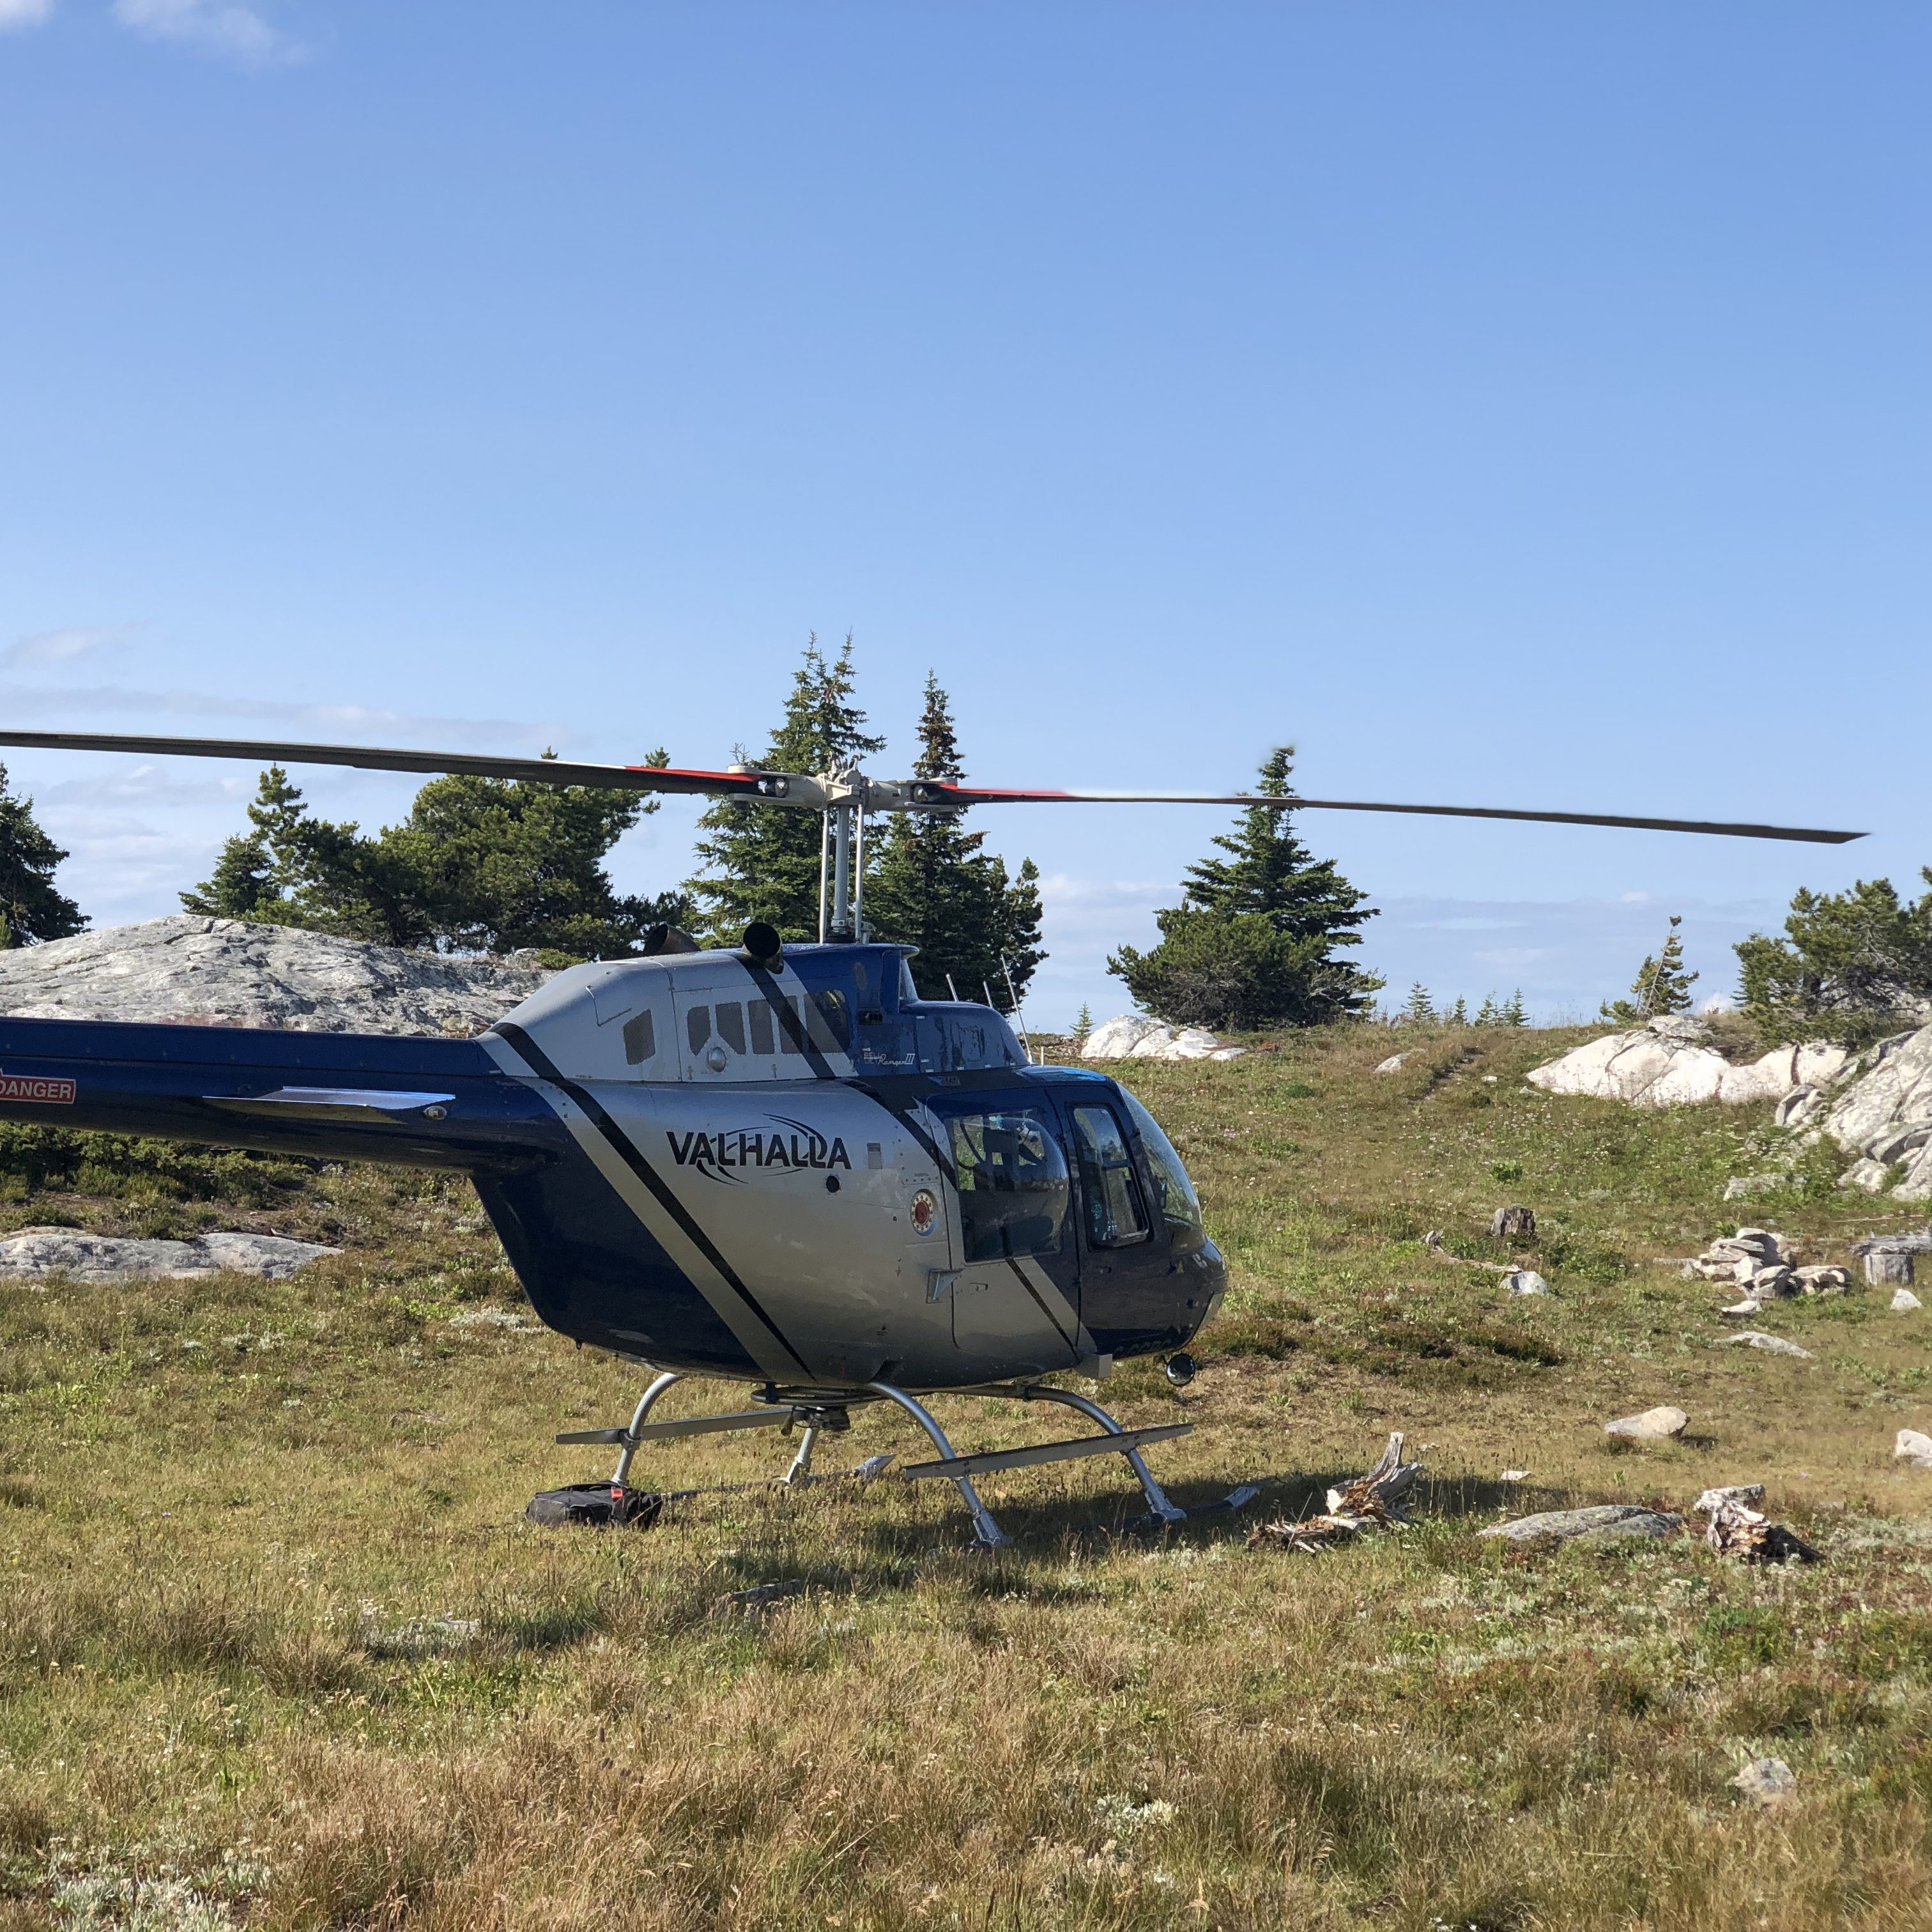 Valhalla helicopter in alpine meadow